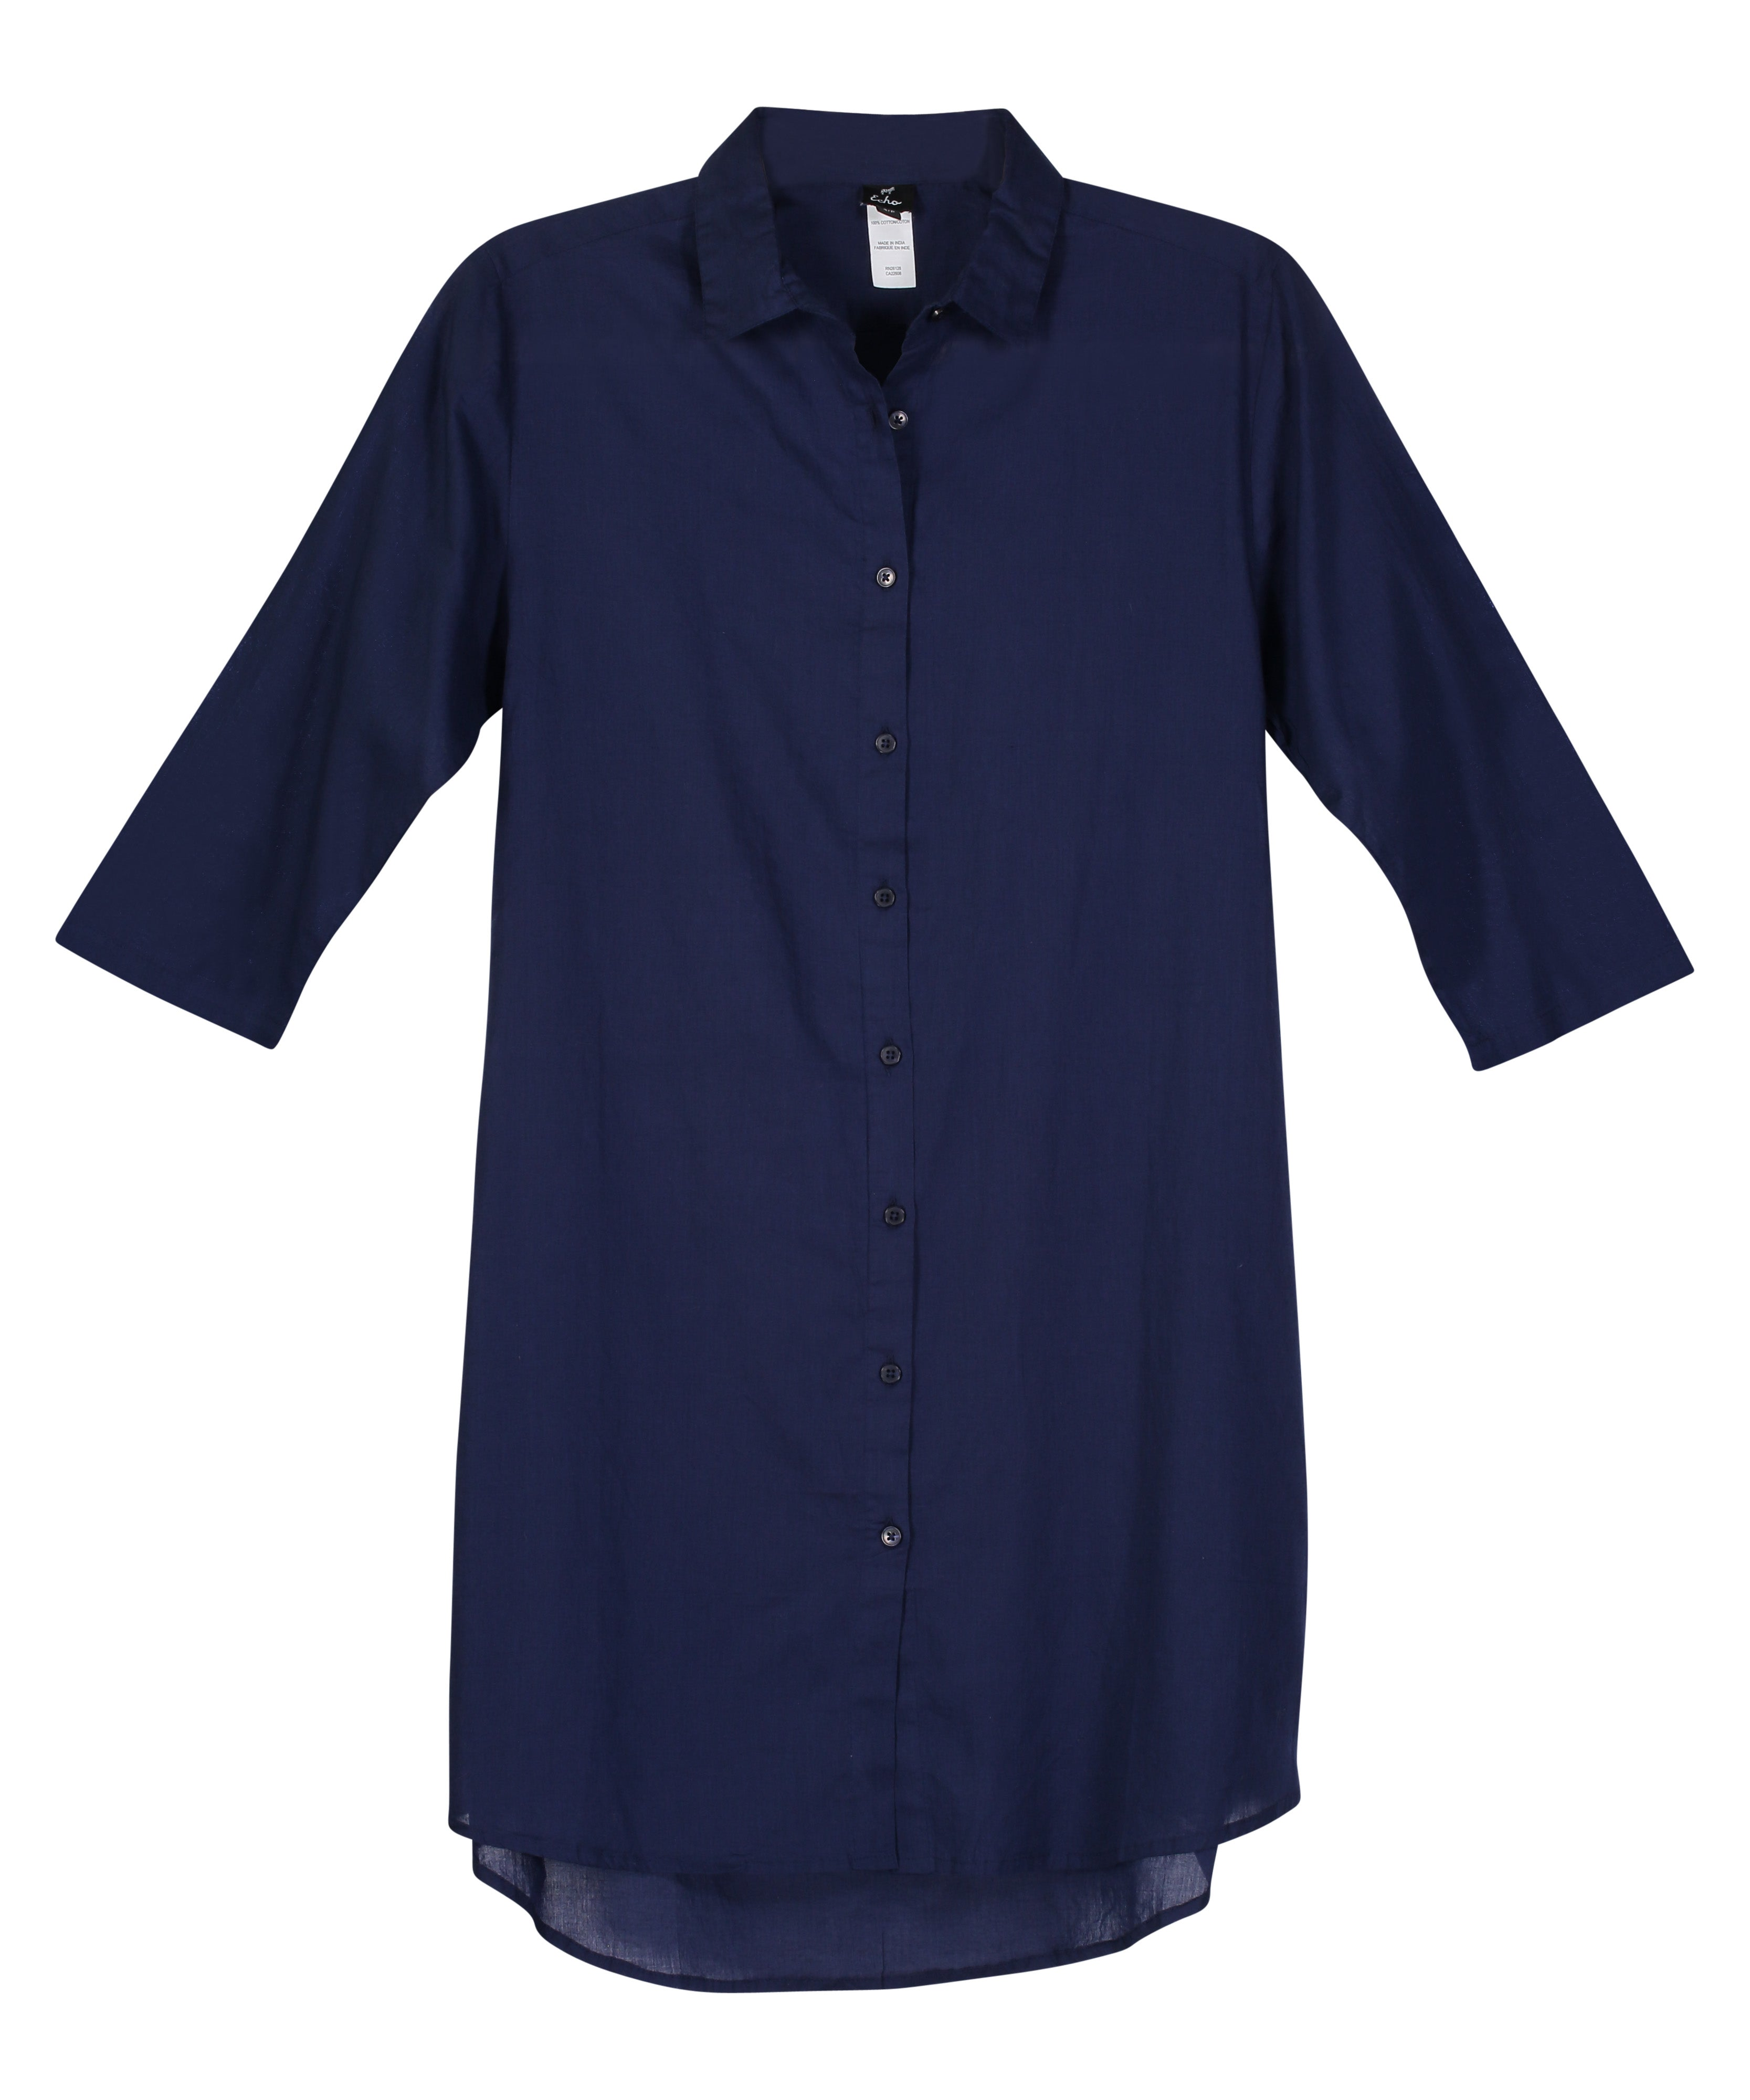 Navy - Solid Button Down